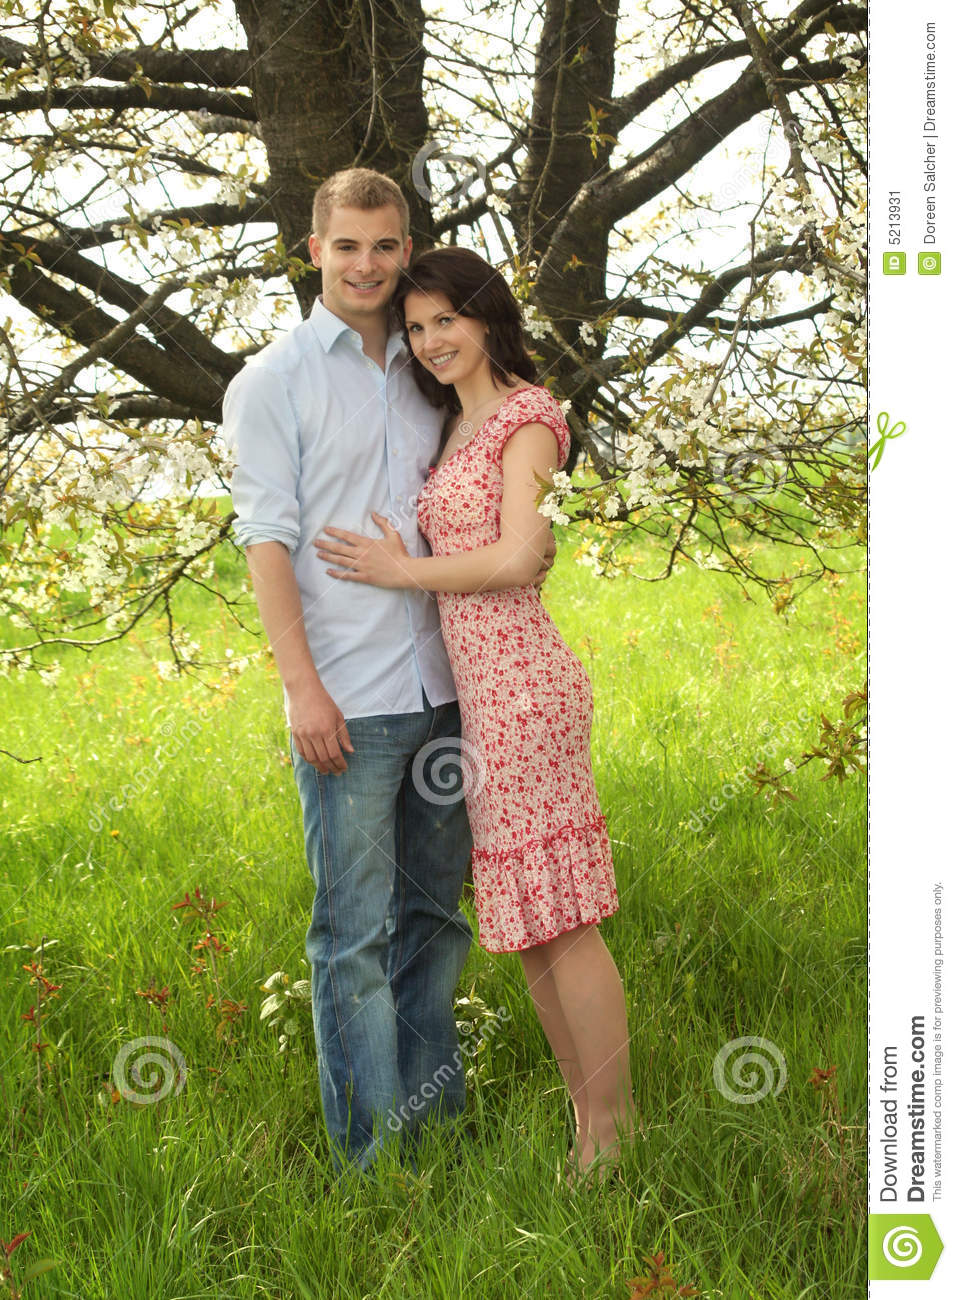 http://thumbs.dreamstime.com/z/happy-couple-nature-5213931.jpg